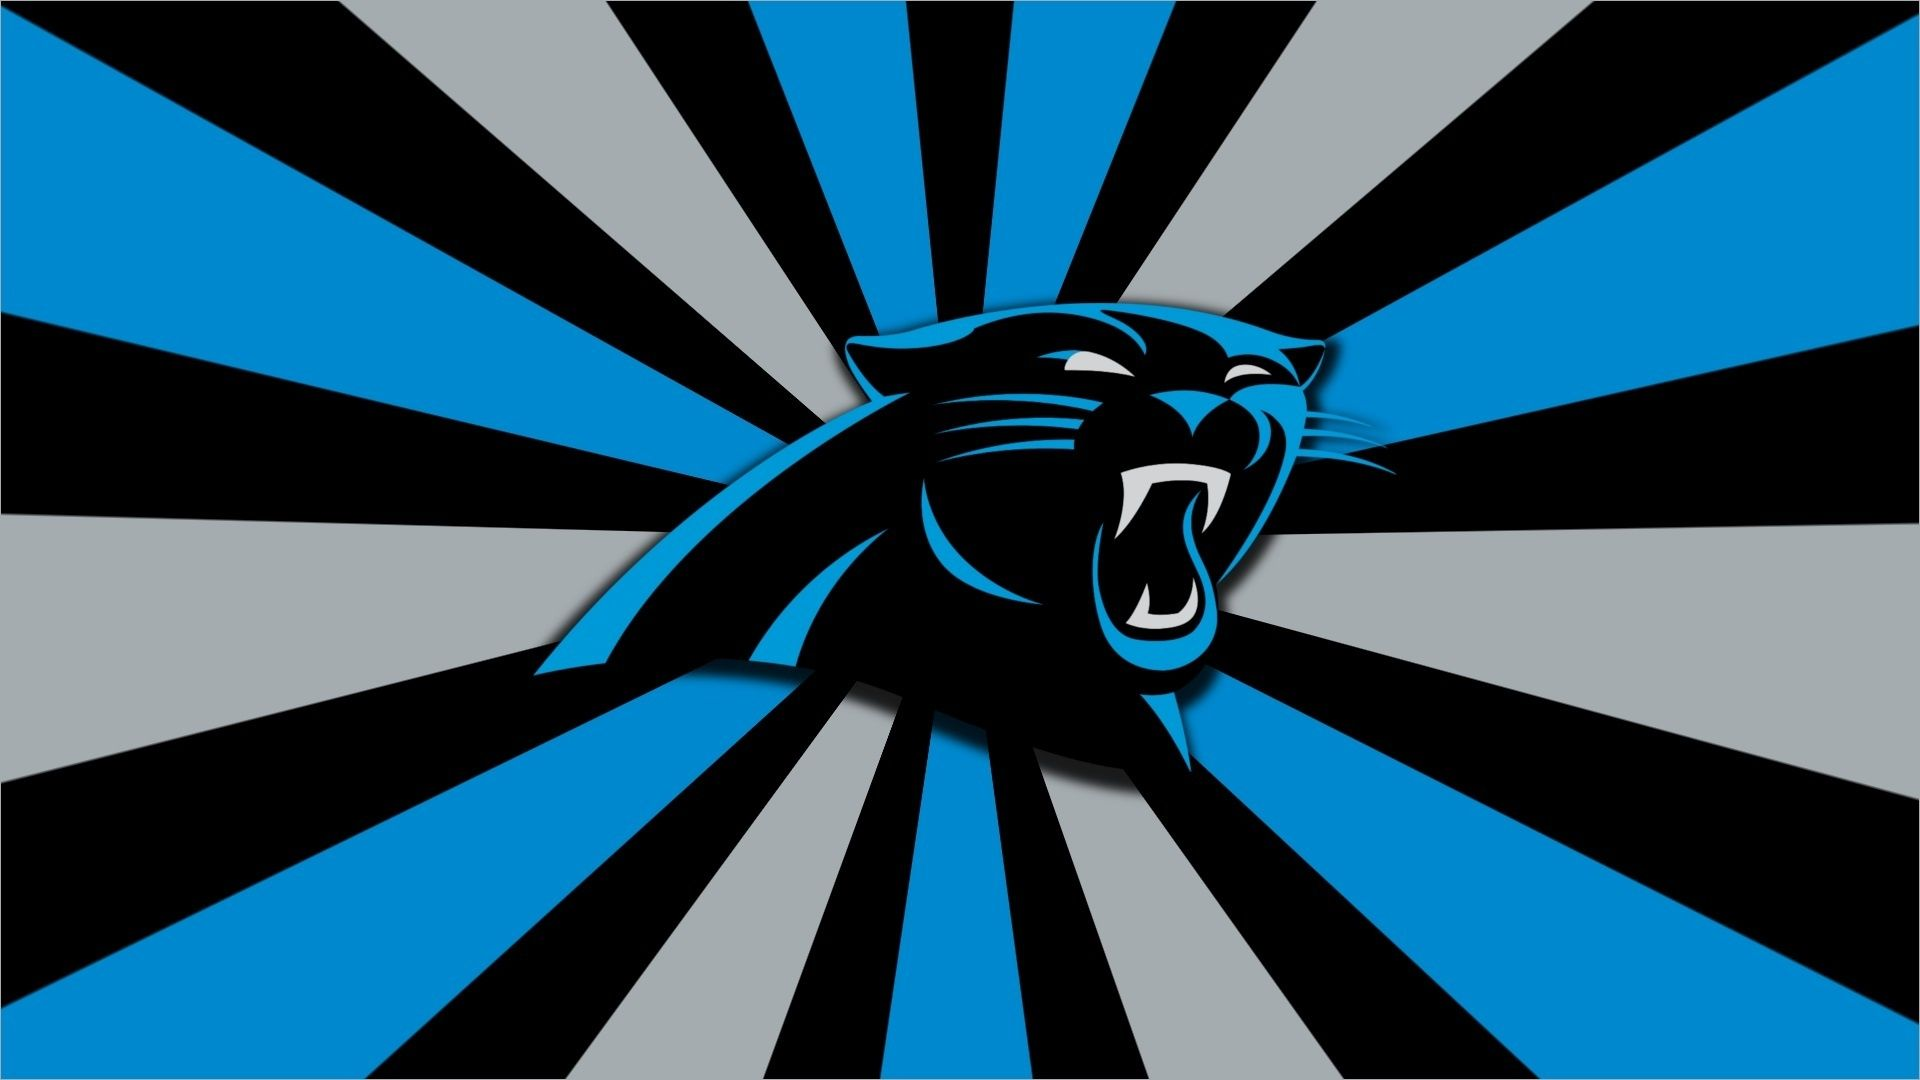 carolina panthers logo pictures.